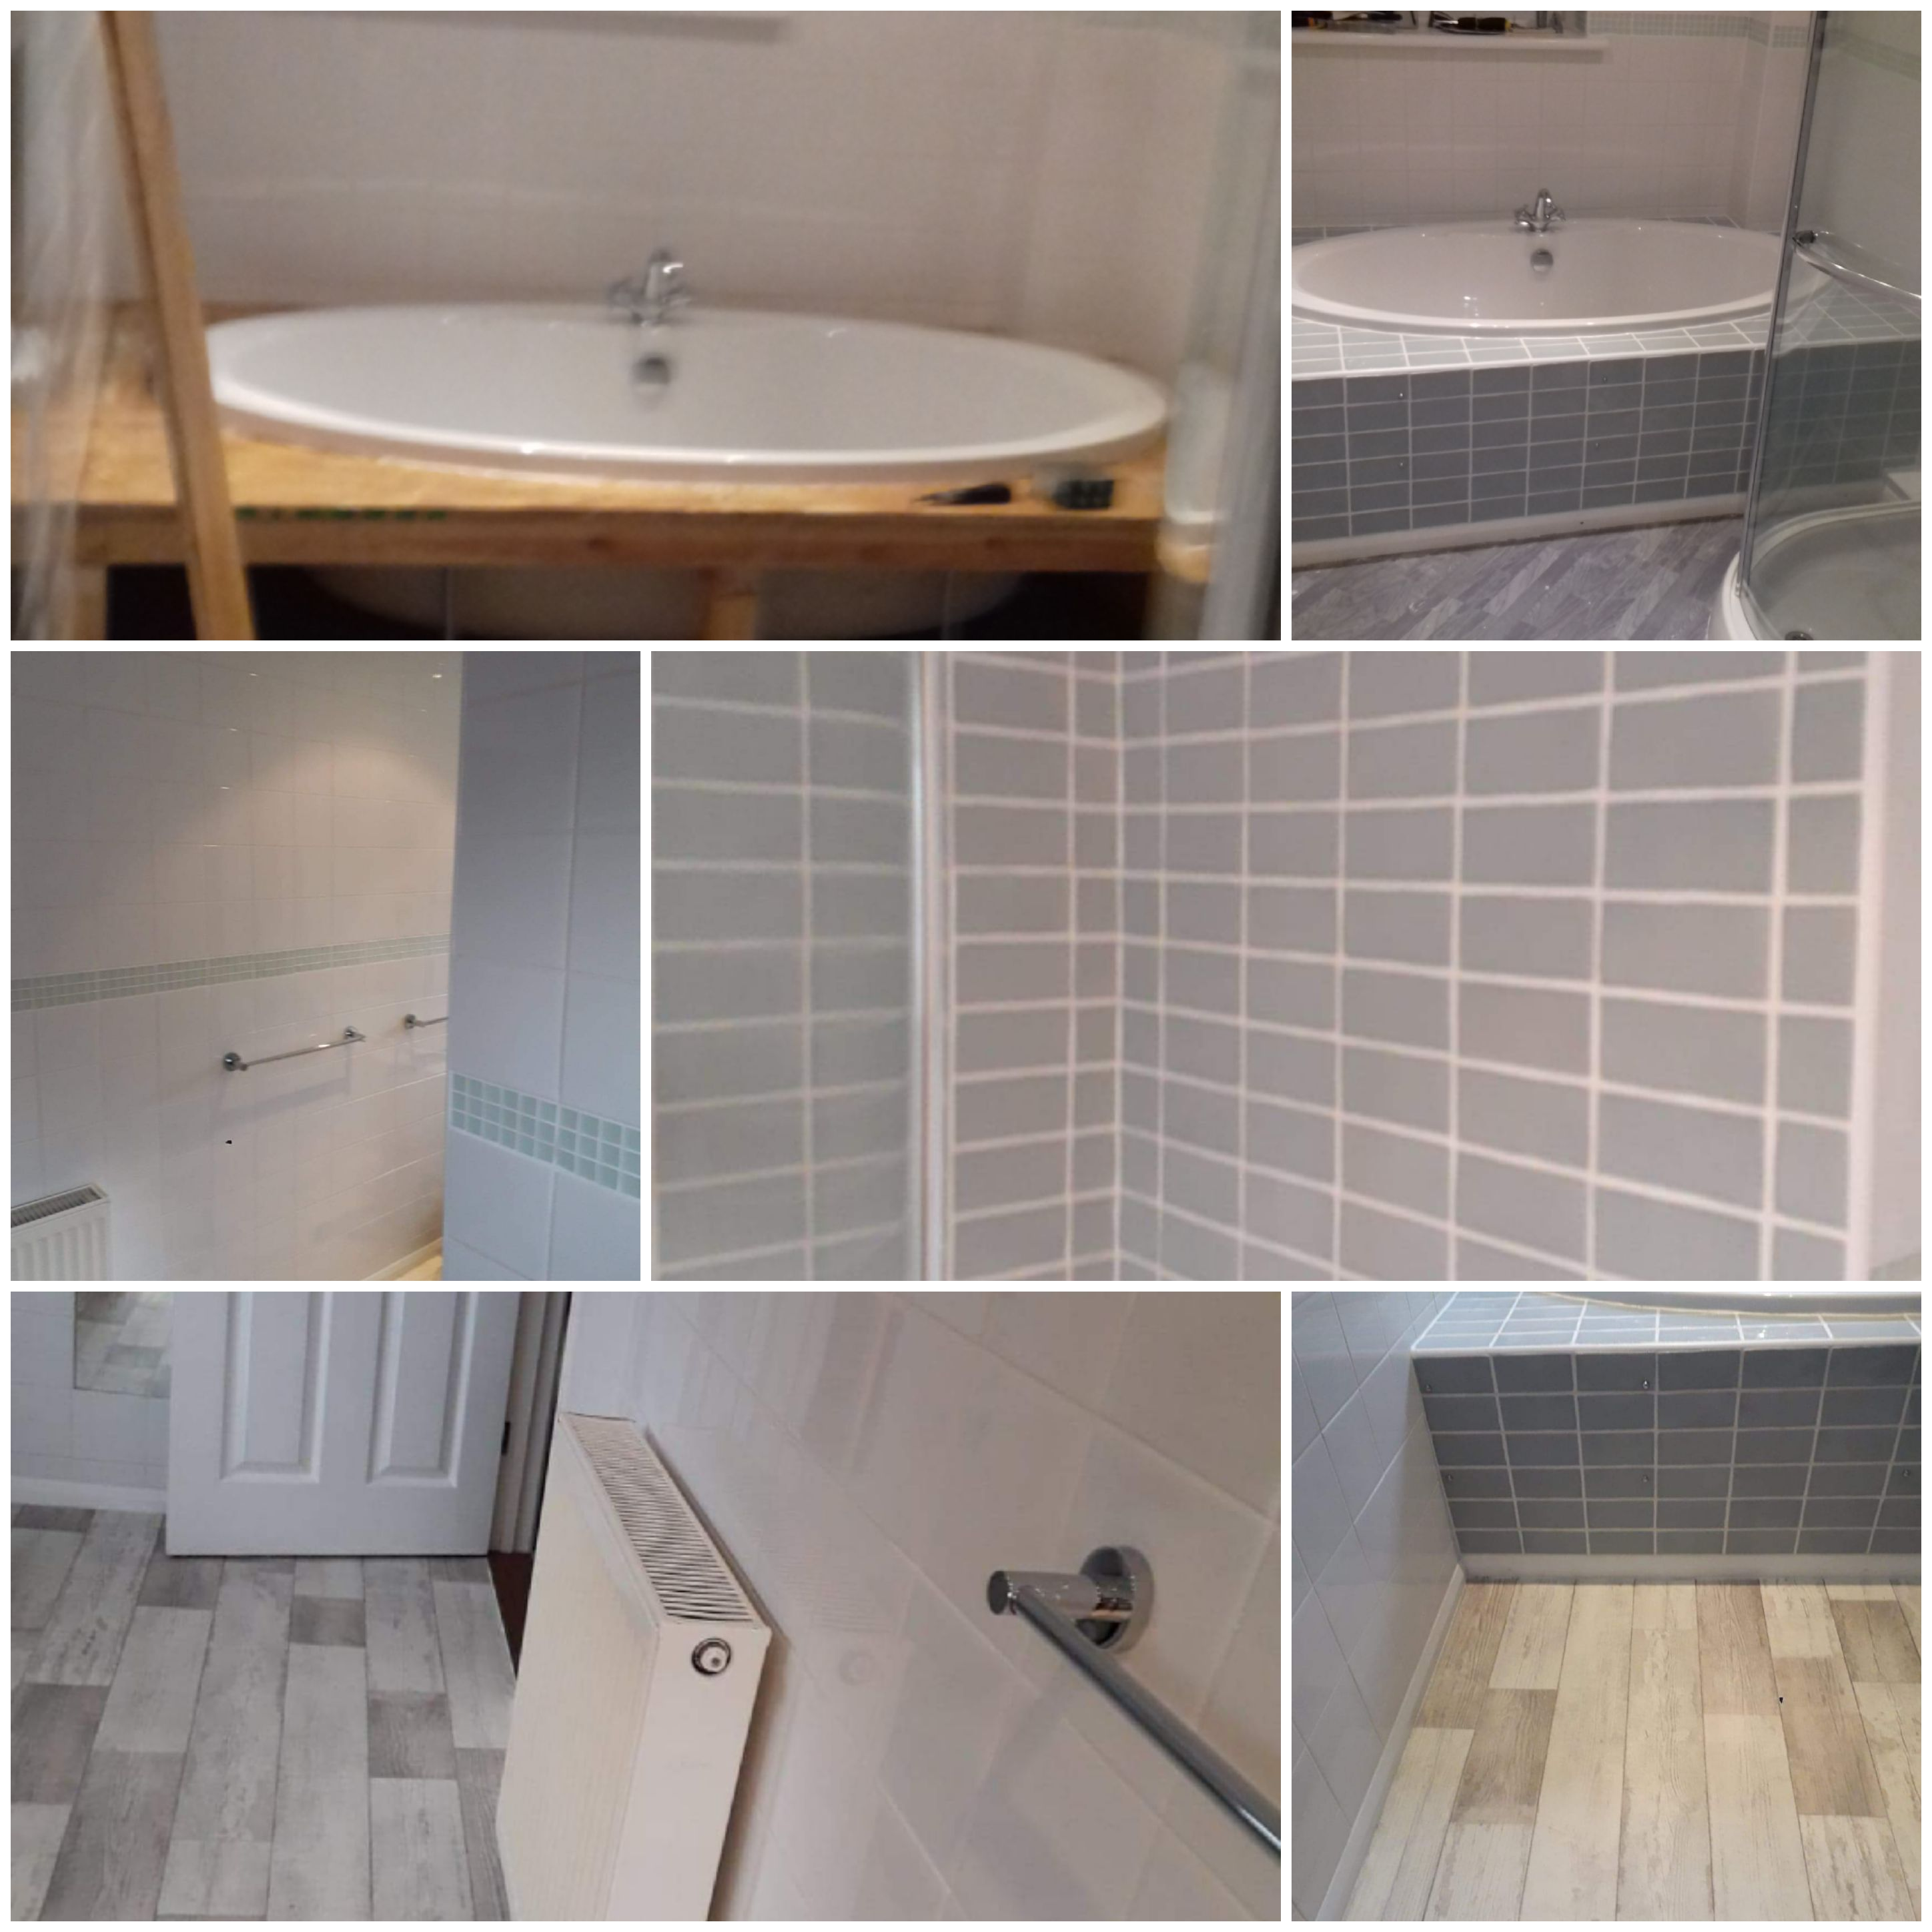 Bathroom re tiled and internal doors fit